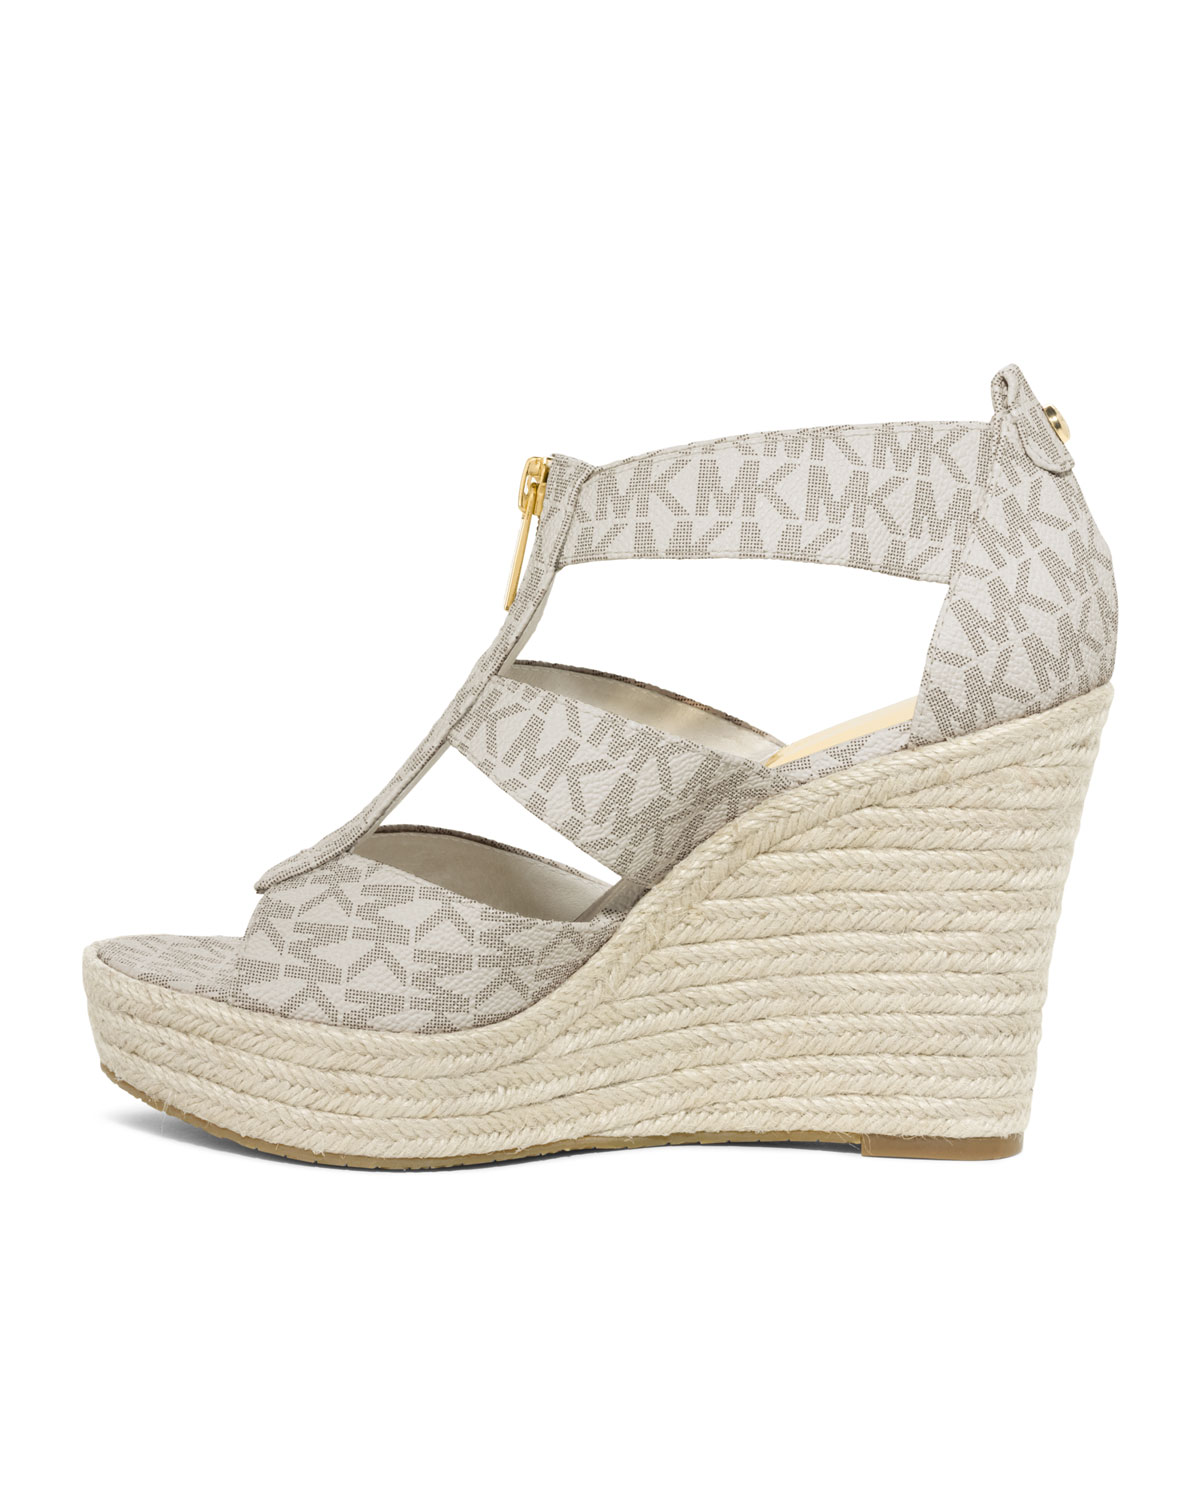 lyst michael kors damita logo zipper wedge sandal in natural